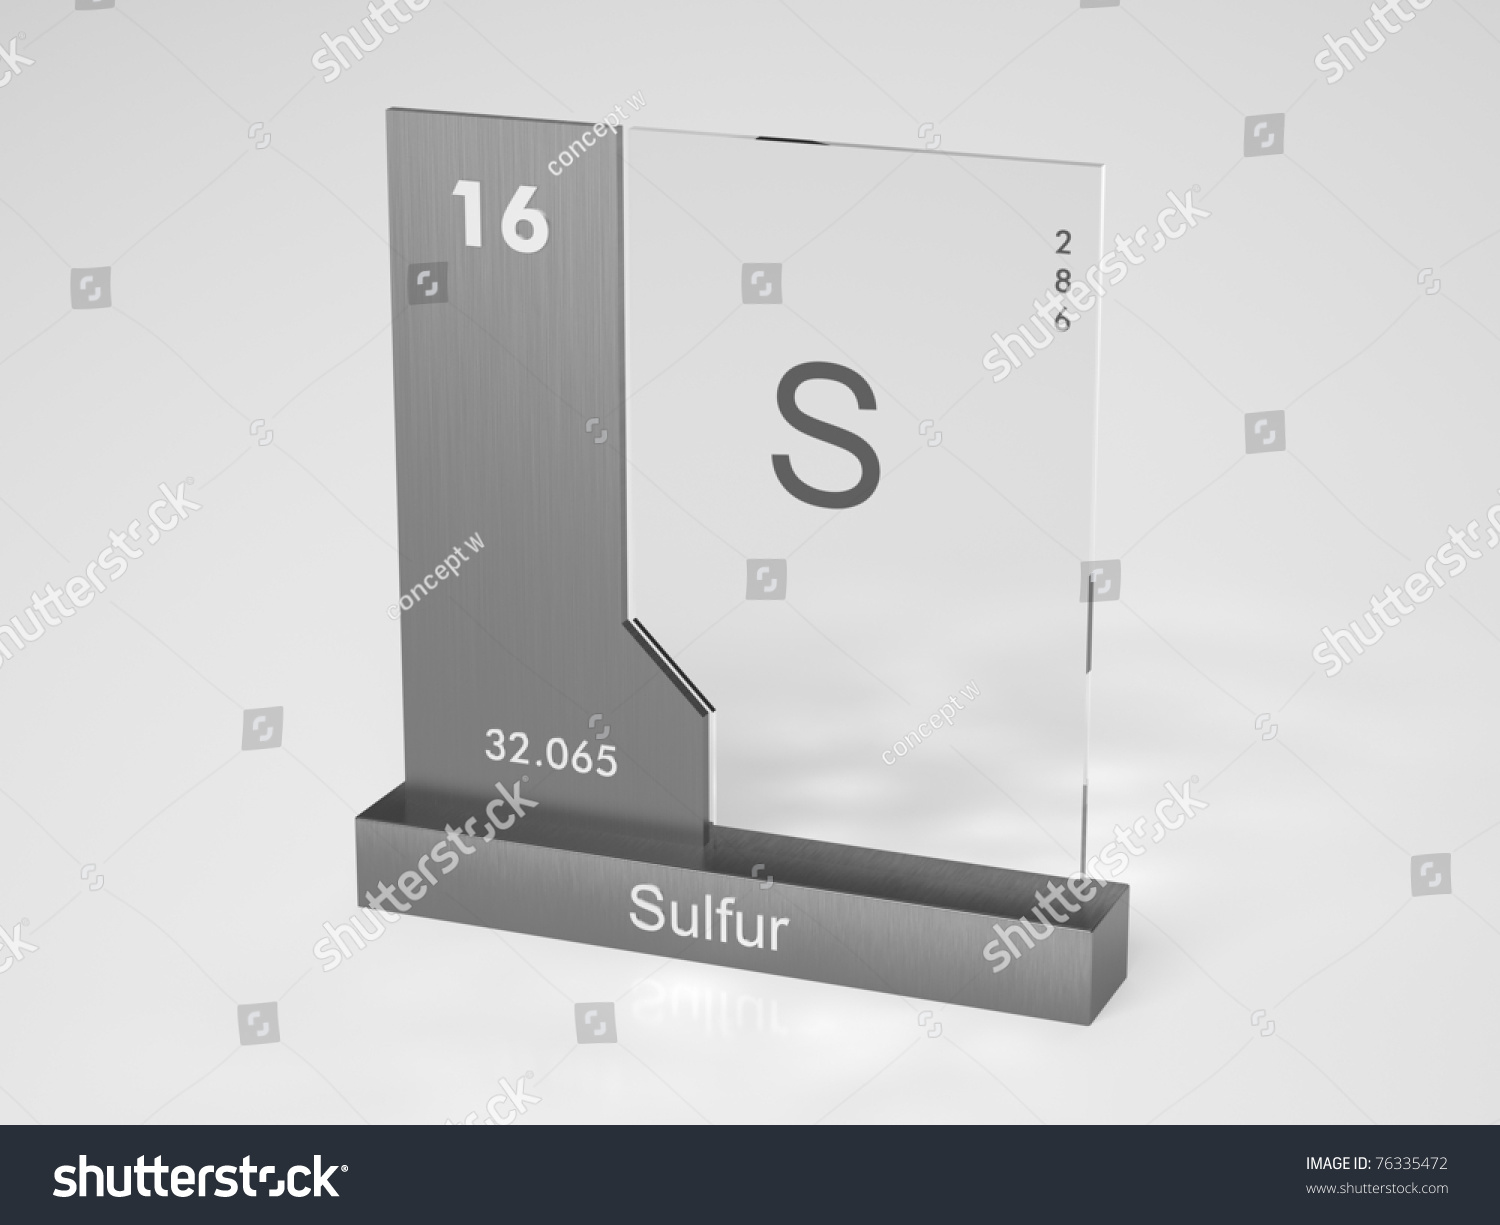 Sulfur symbol s chemical element periodic stock illustration sulfur symbol s chemical element of the periodic table buycottarizona Image collections